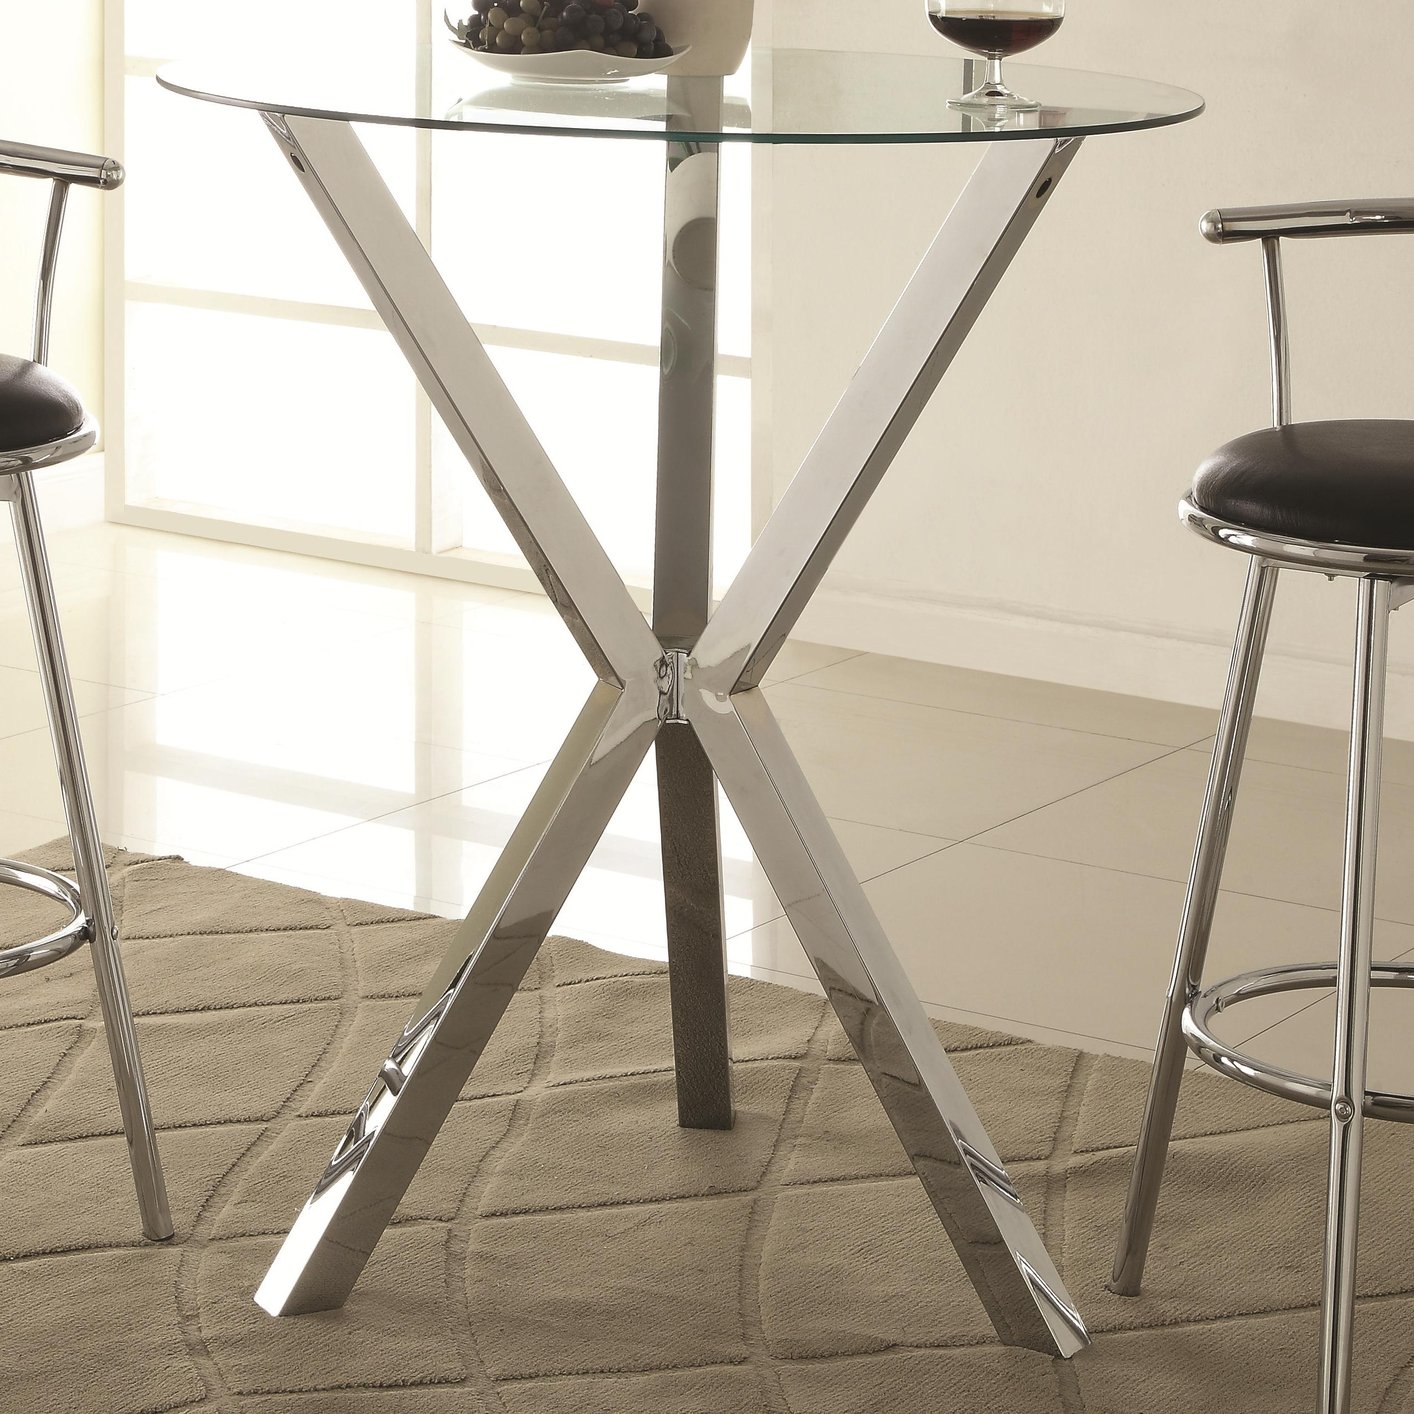 Coaster 100186 Silver Glass Bar Table - Steal-A-Sofa Furniture Outlet ...